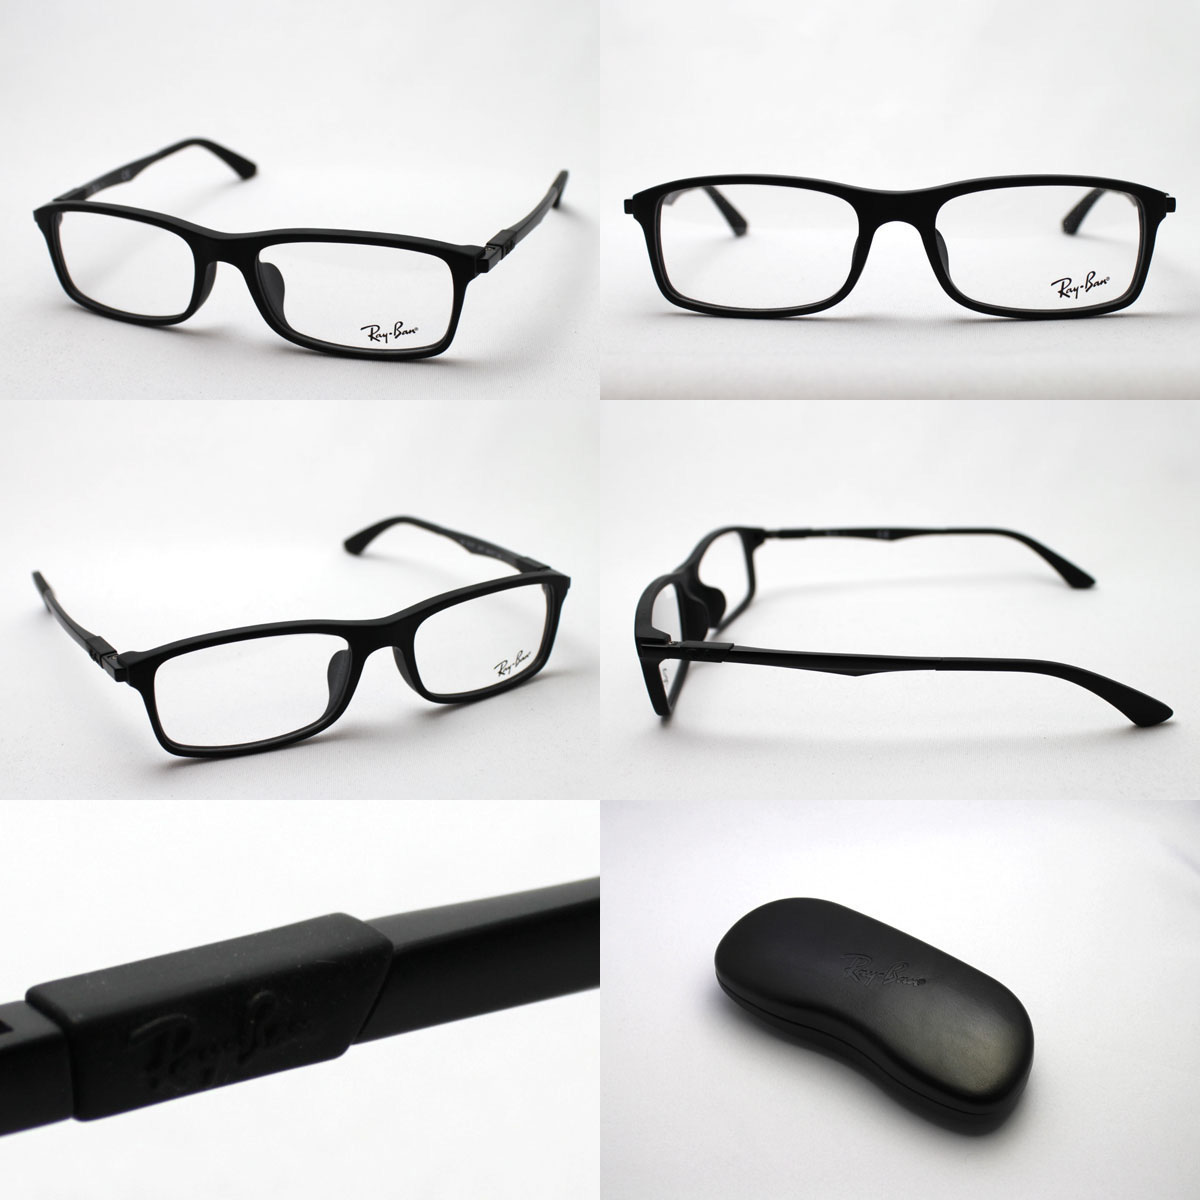 936e1056c9 ... Blue light cut glasses black edge RayBan square with the premium  production end model assortment of